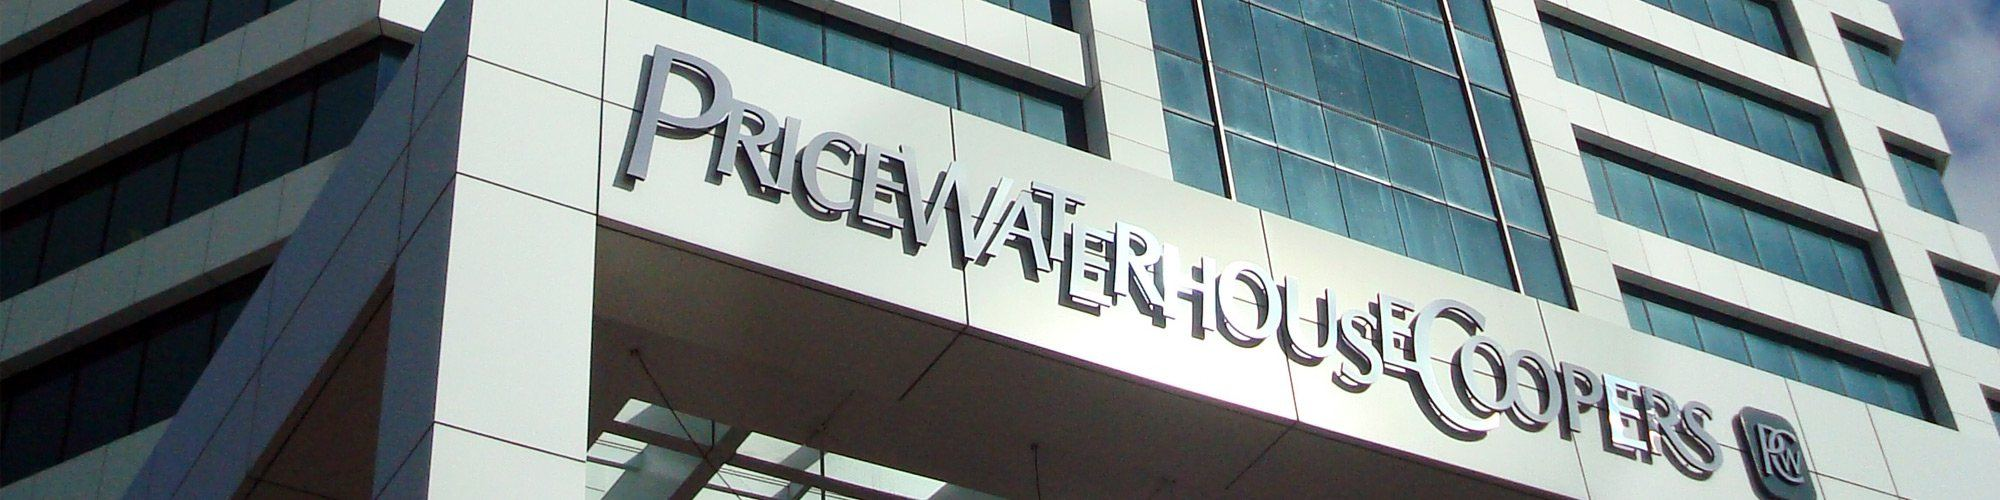 Pwc Tower Auckland Banner 1